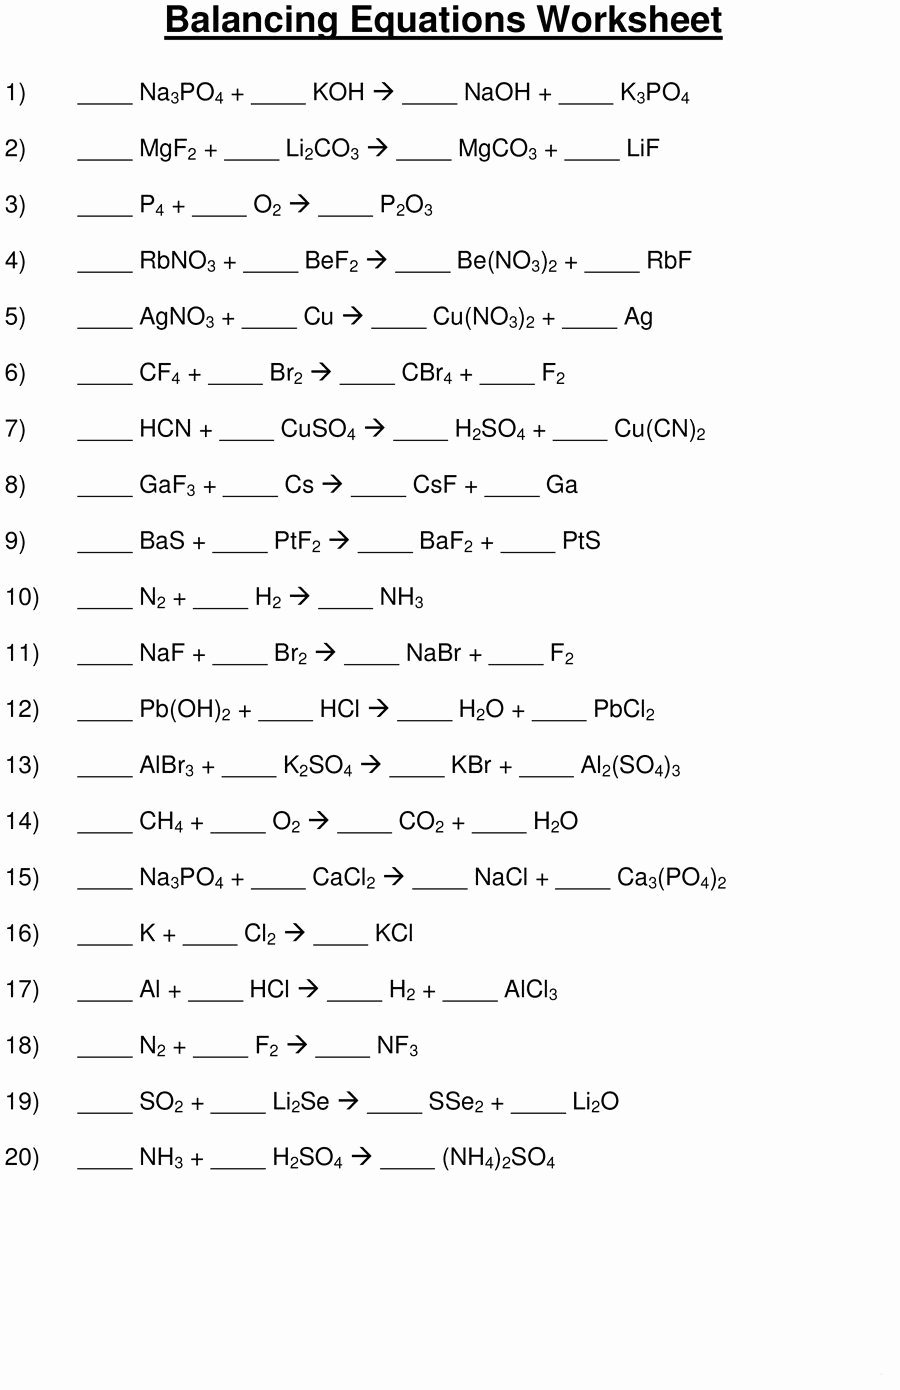 Balancing Equations Worksheet Answers Chemistry Inspirational Do You Find Balancing the Chemical Equation A Daunting